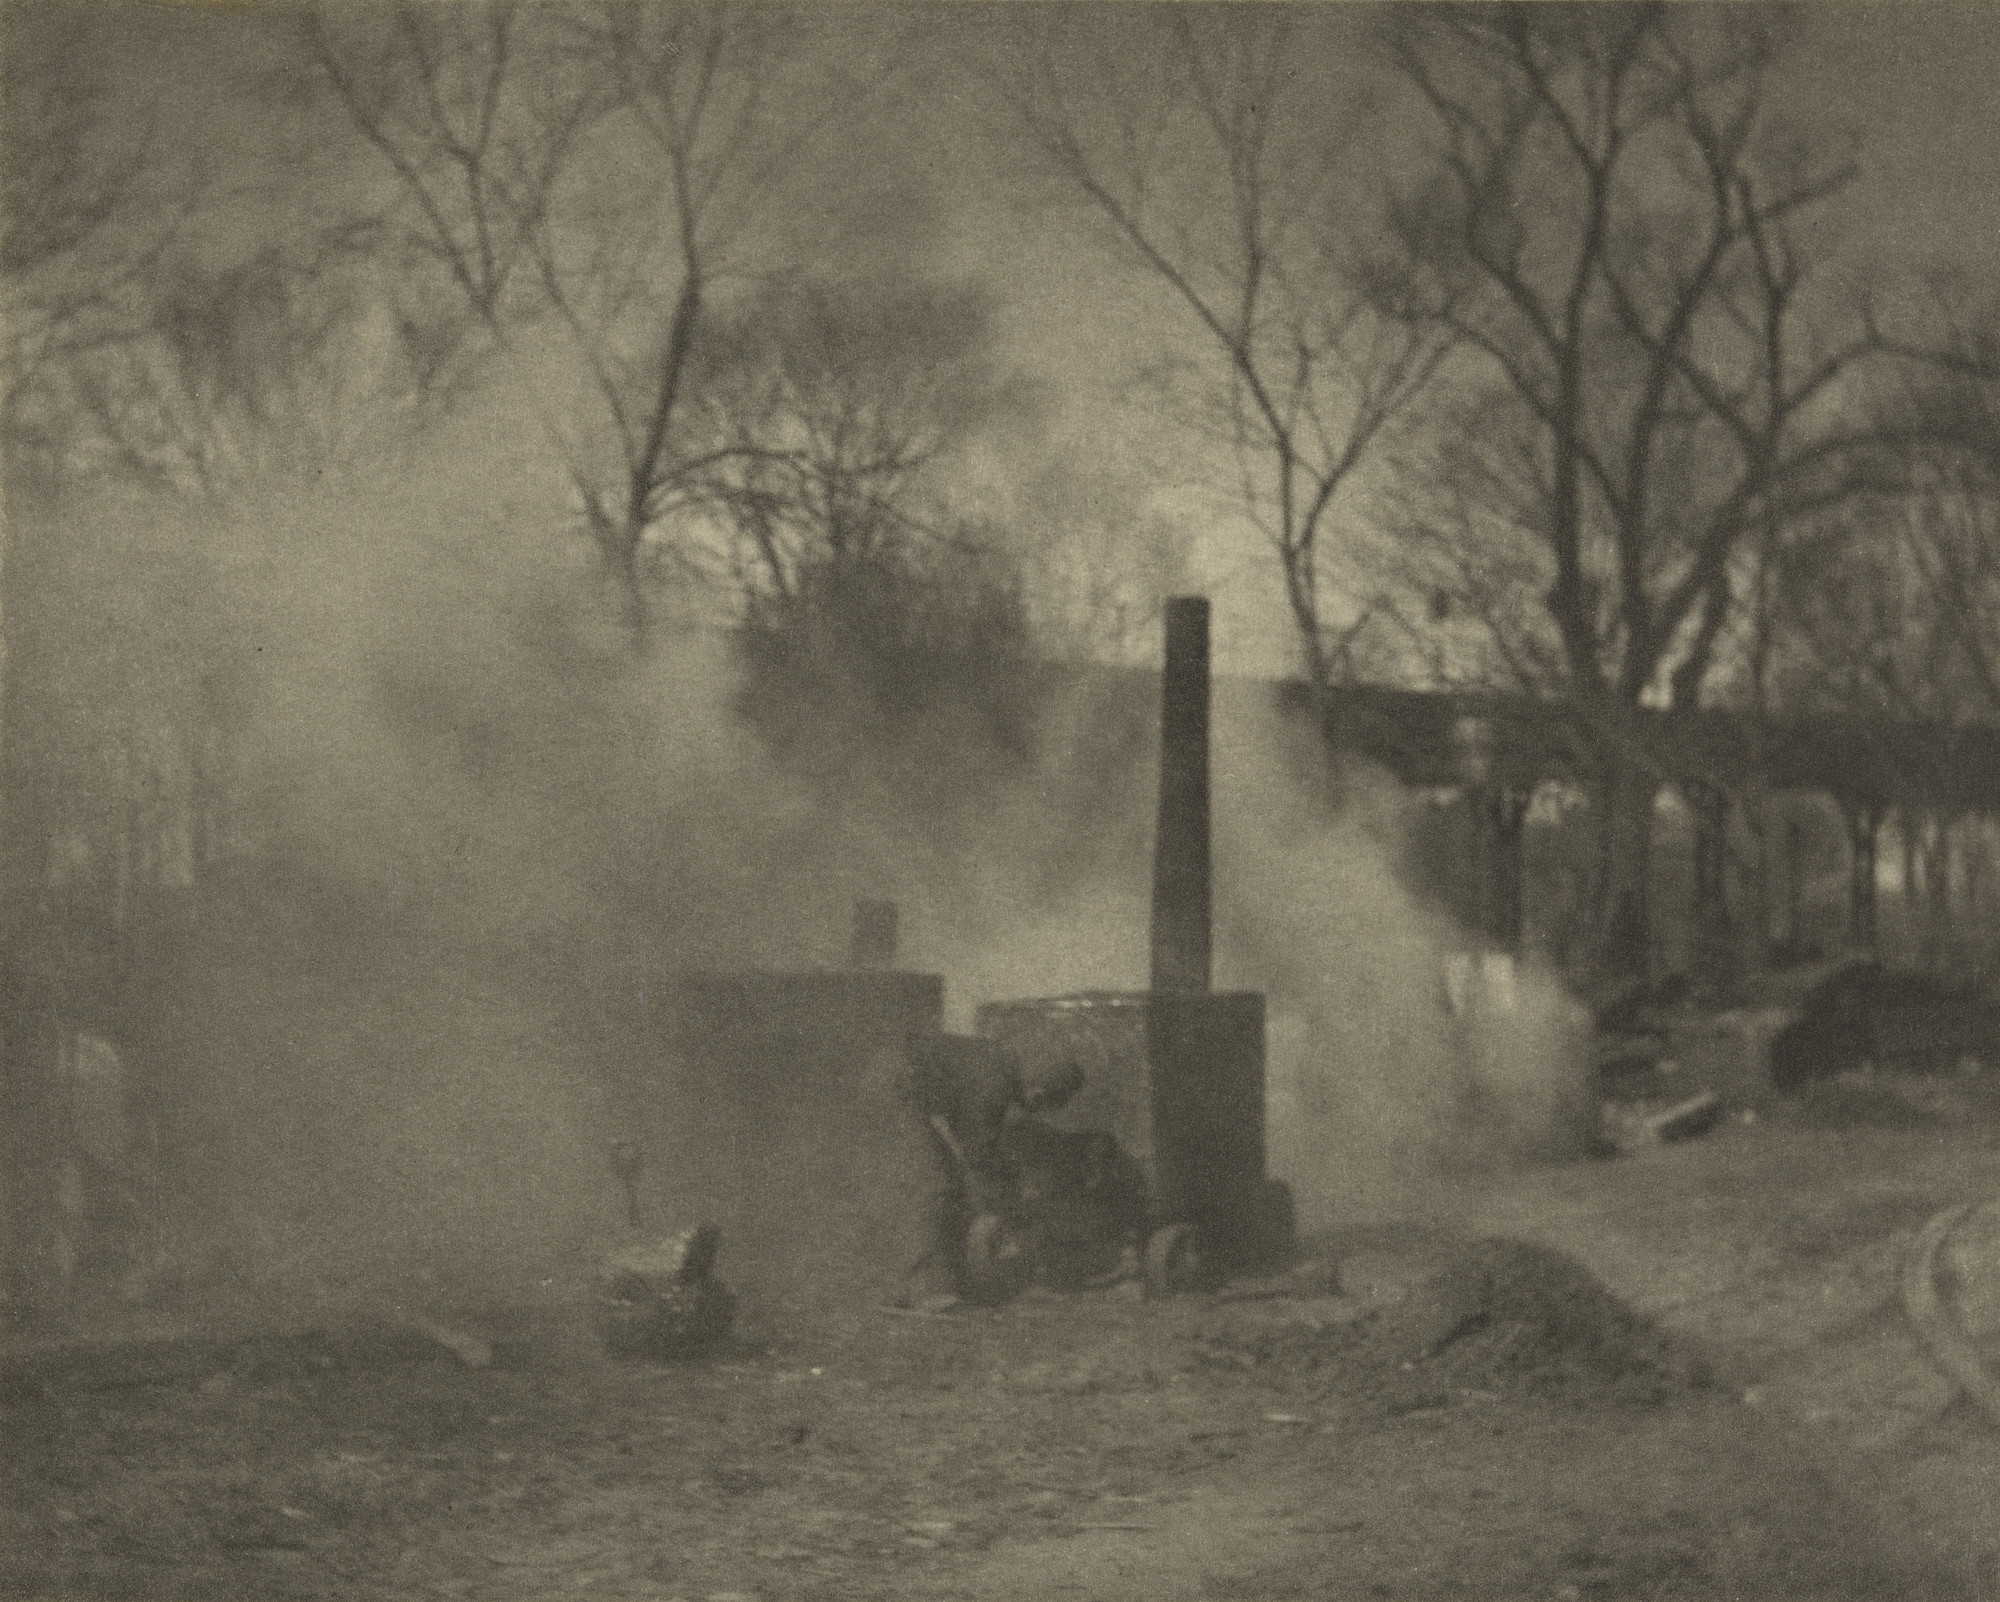 Alfred Stieglitz. The Asphalt Paver, New York. 1892-93